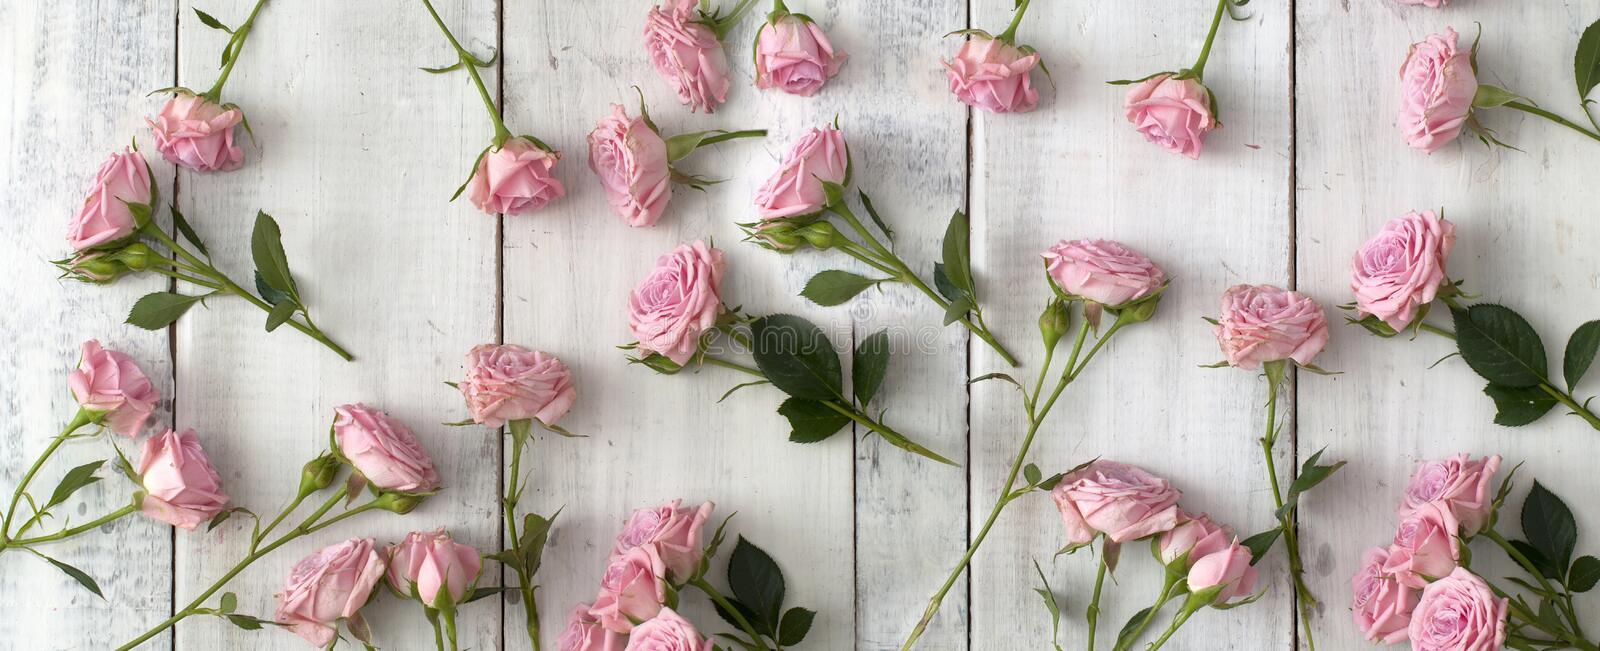 Pink roses on wooden background royalty free stock photography